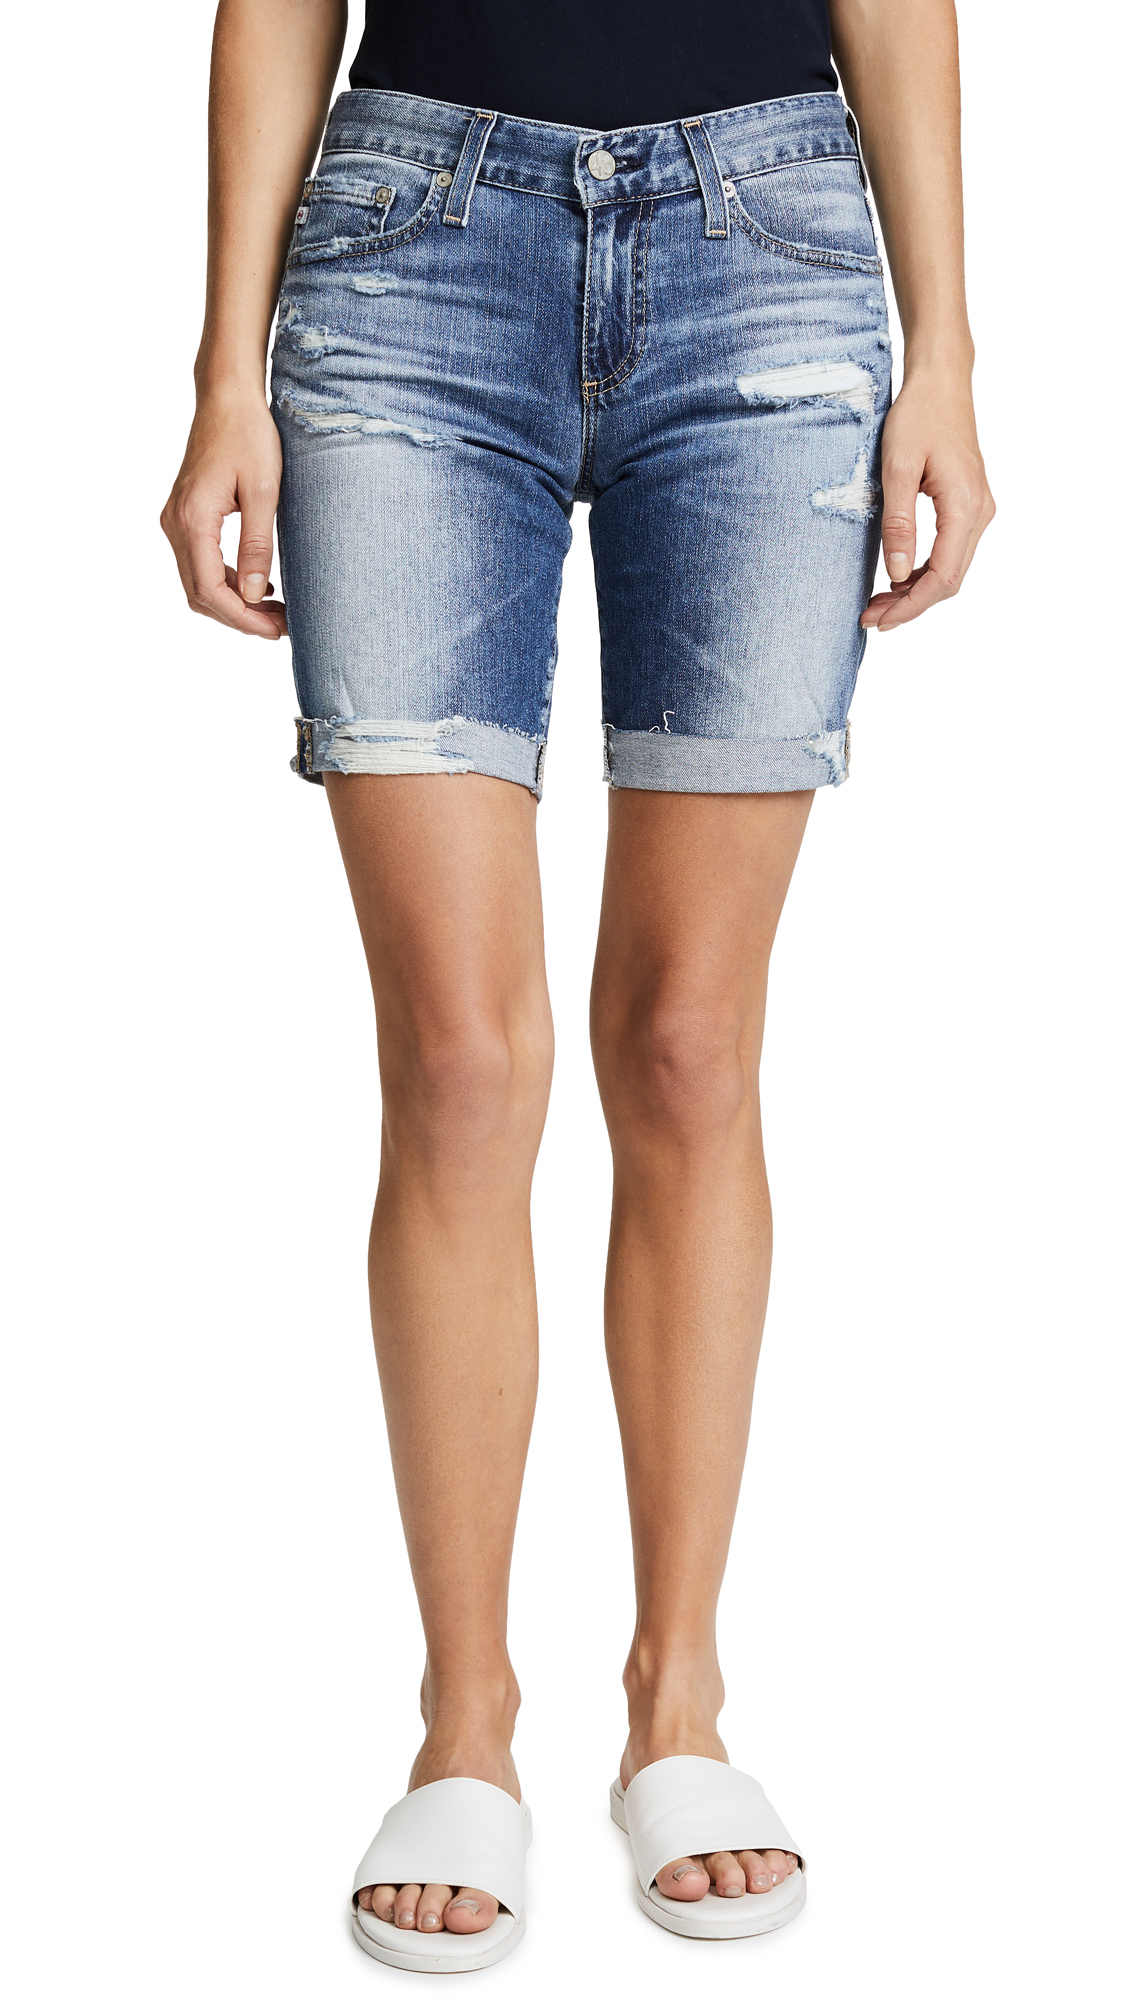 The Nikki Shorts